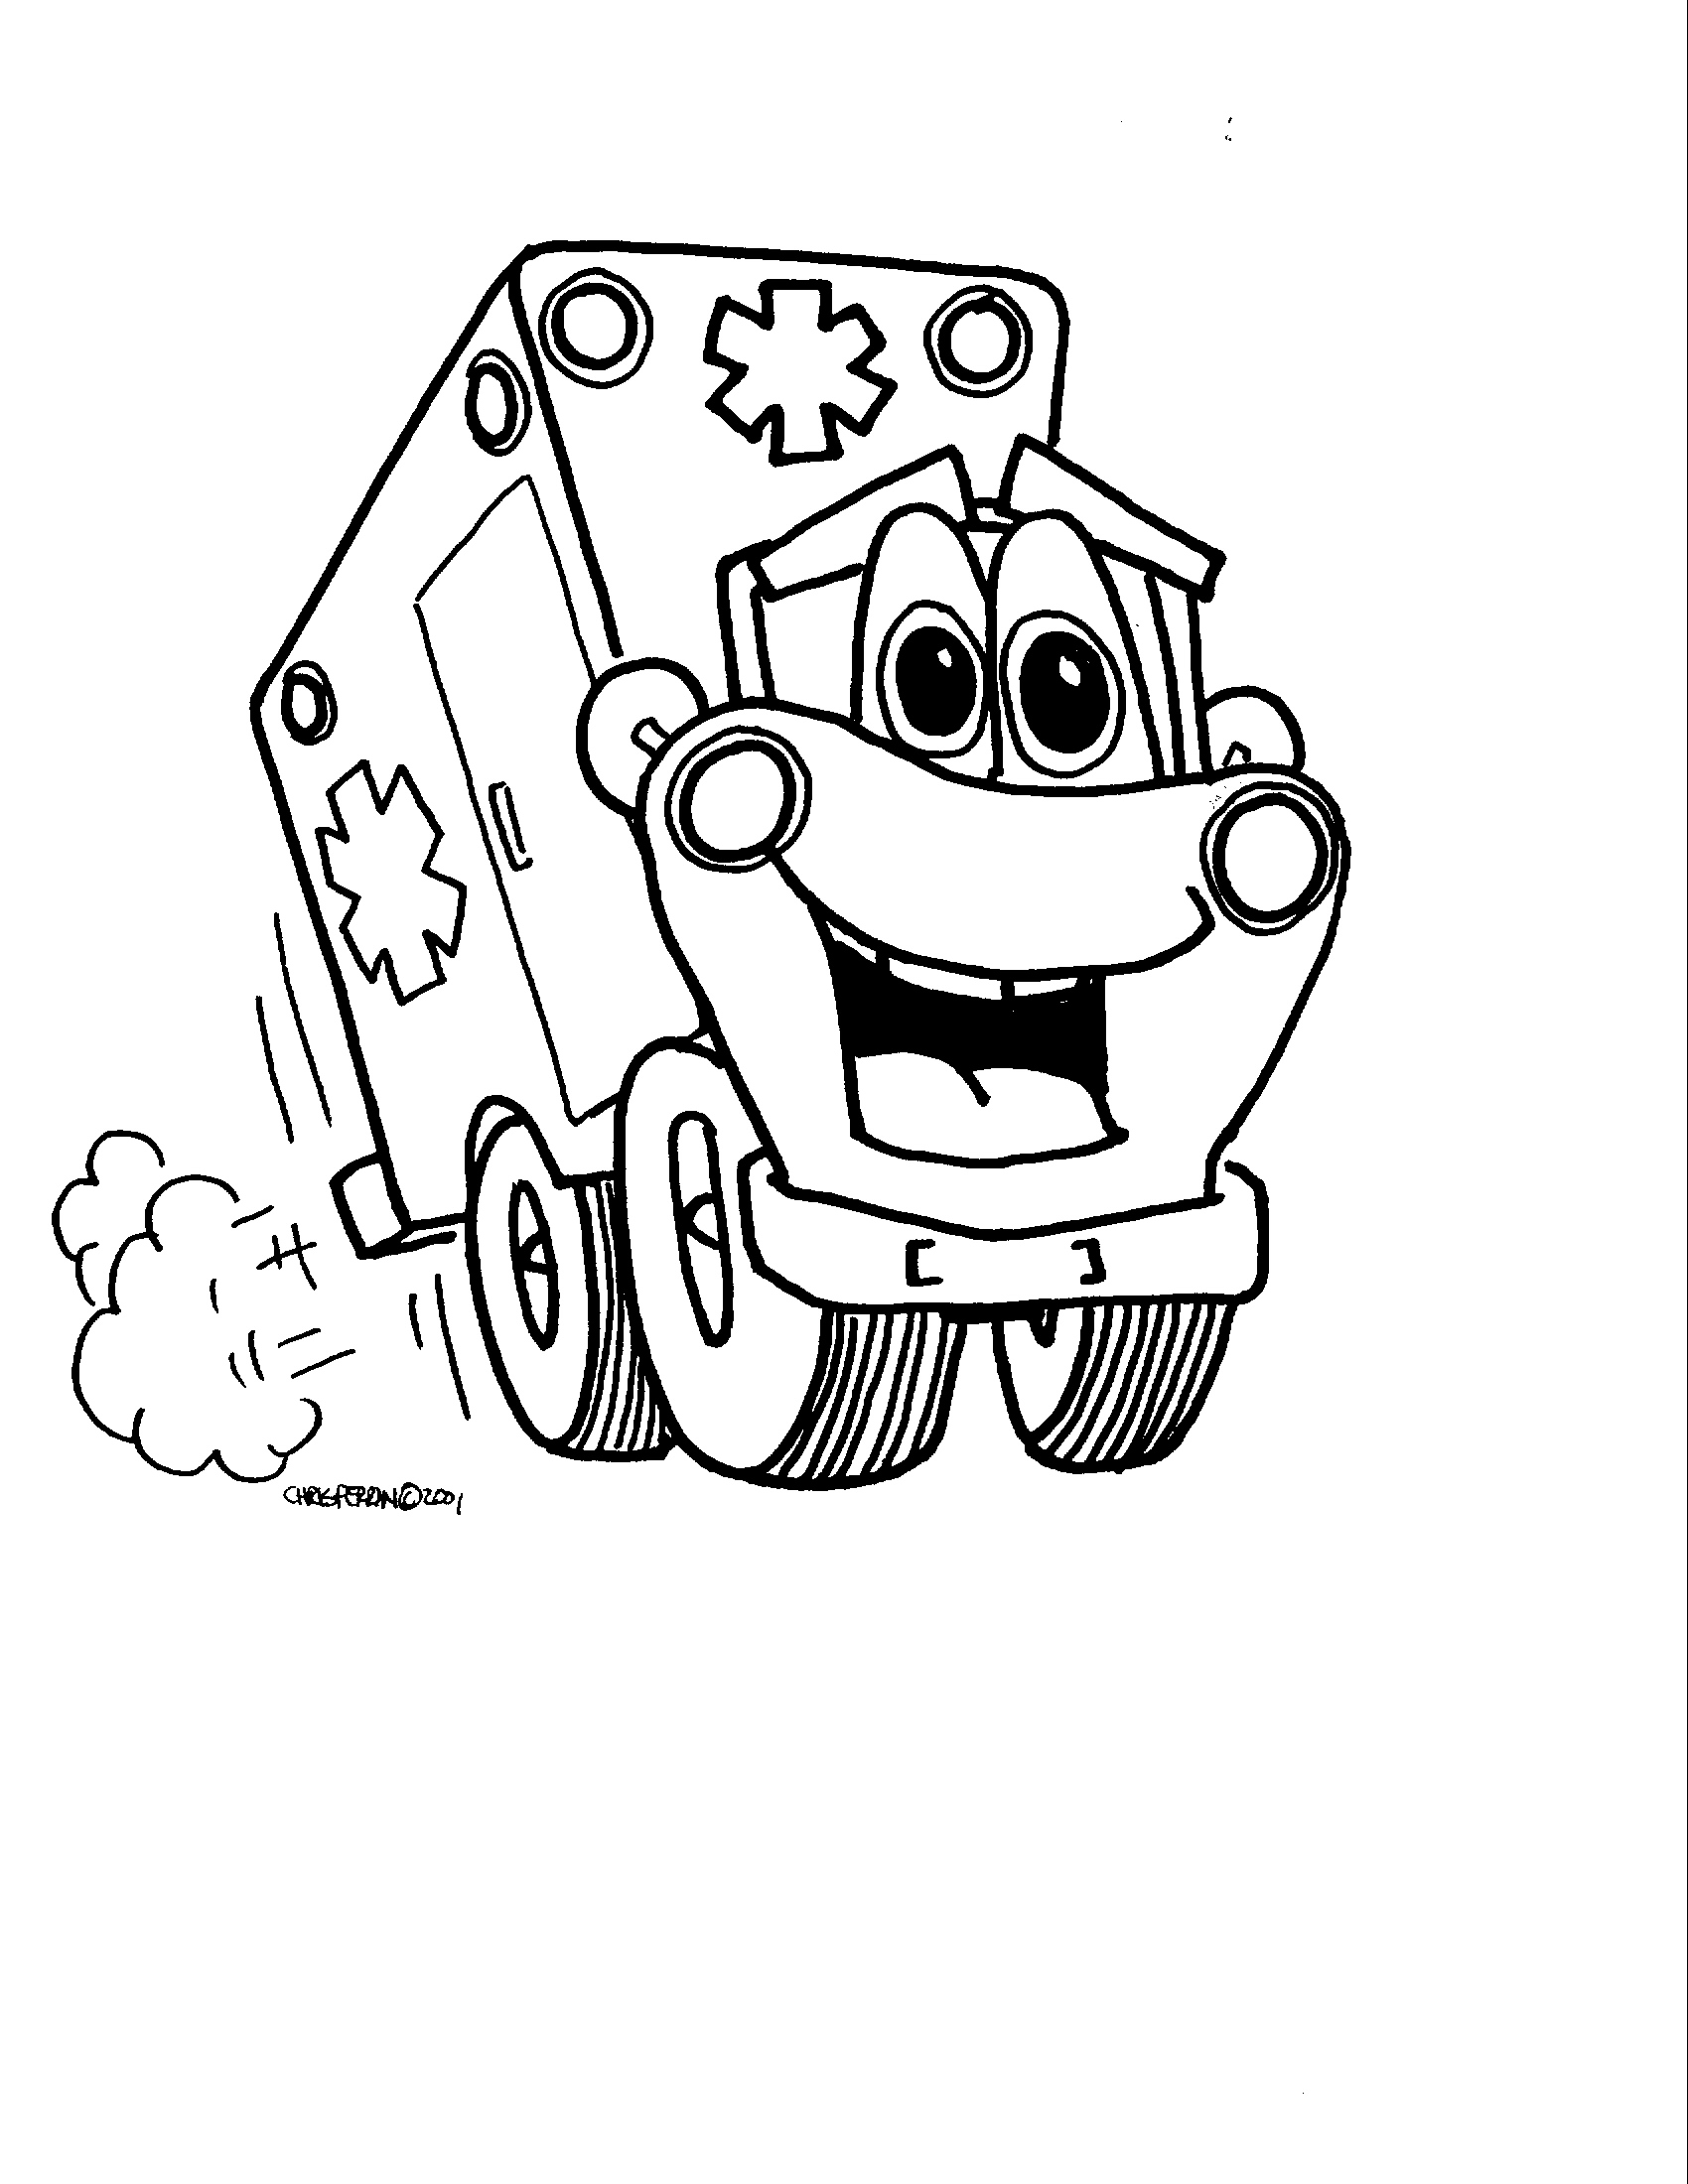 Ems Coloring Pages At Getcolorings